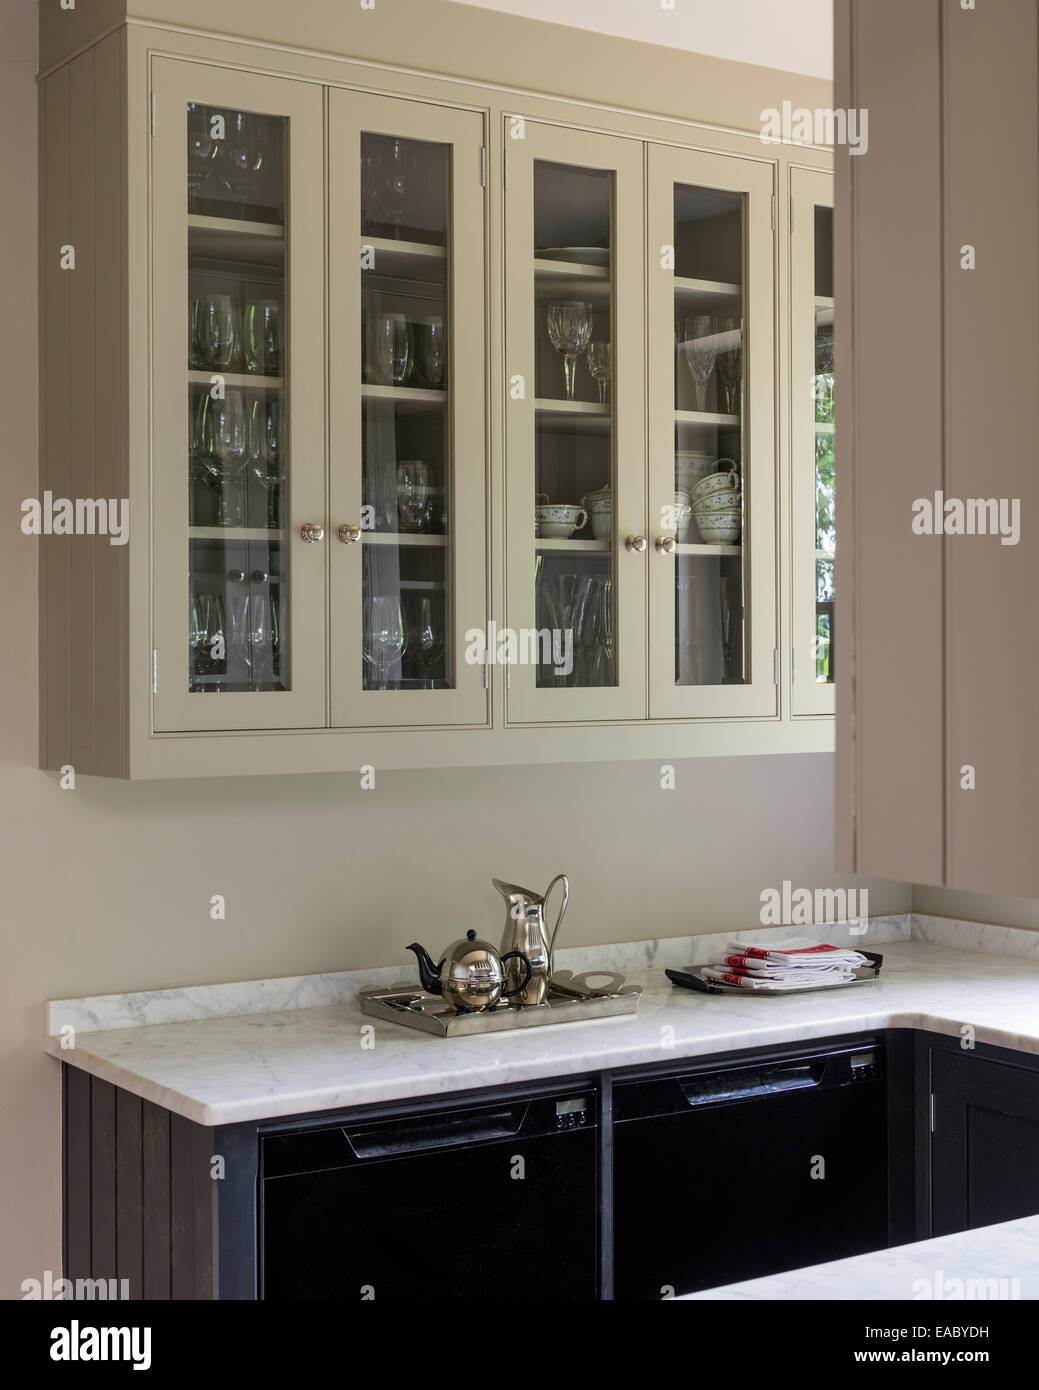 Farrow And Ball Kitchen Farrow Ball Stock Photos Farrow Ball Stock Images Alamy